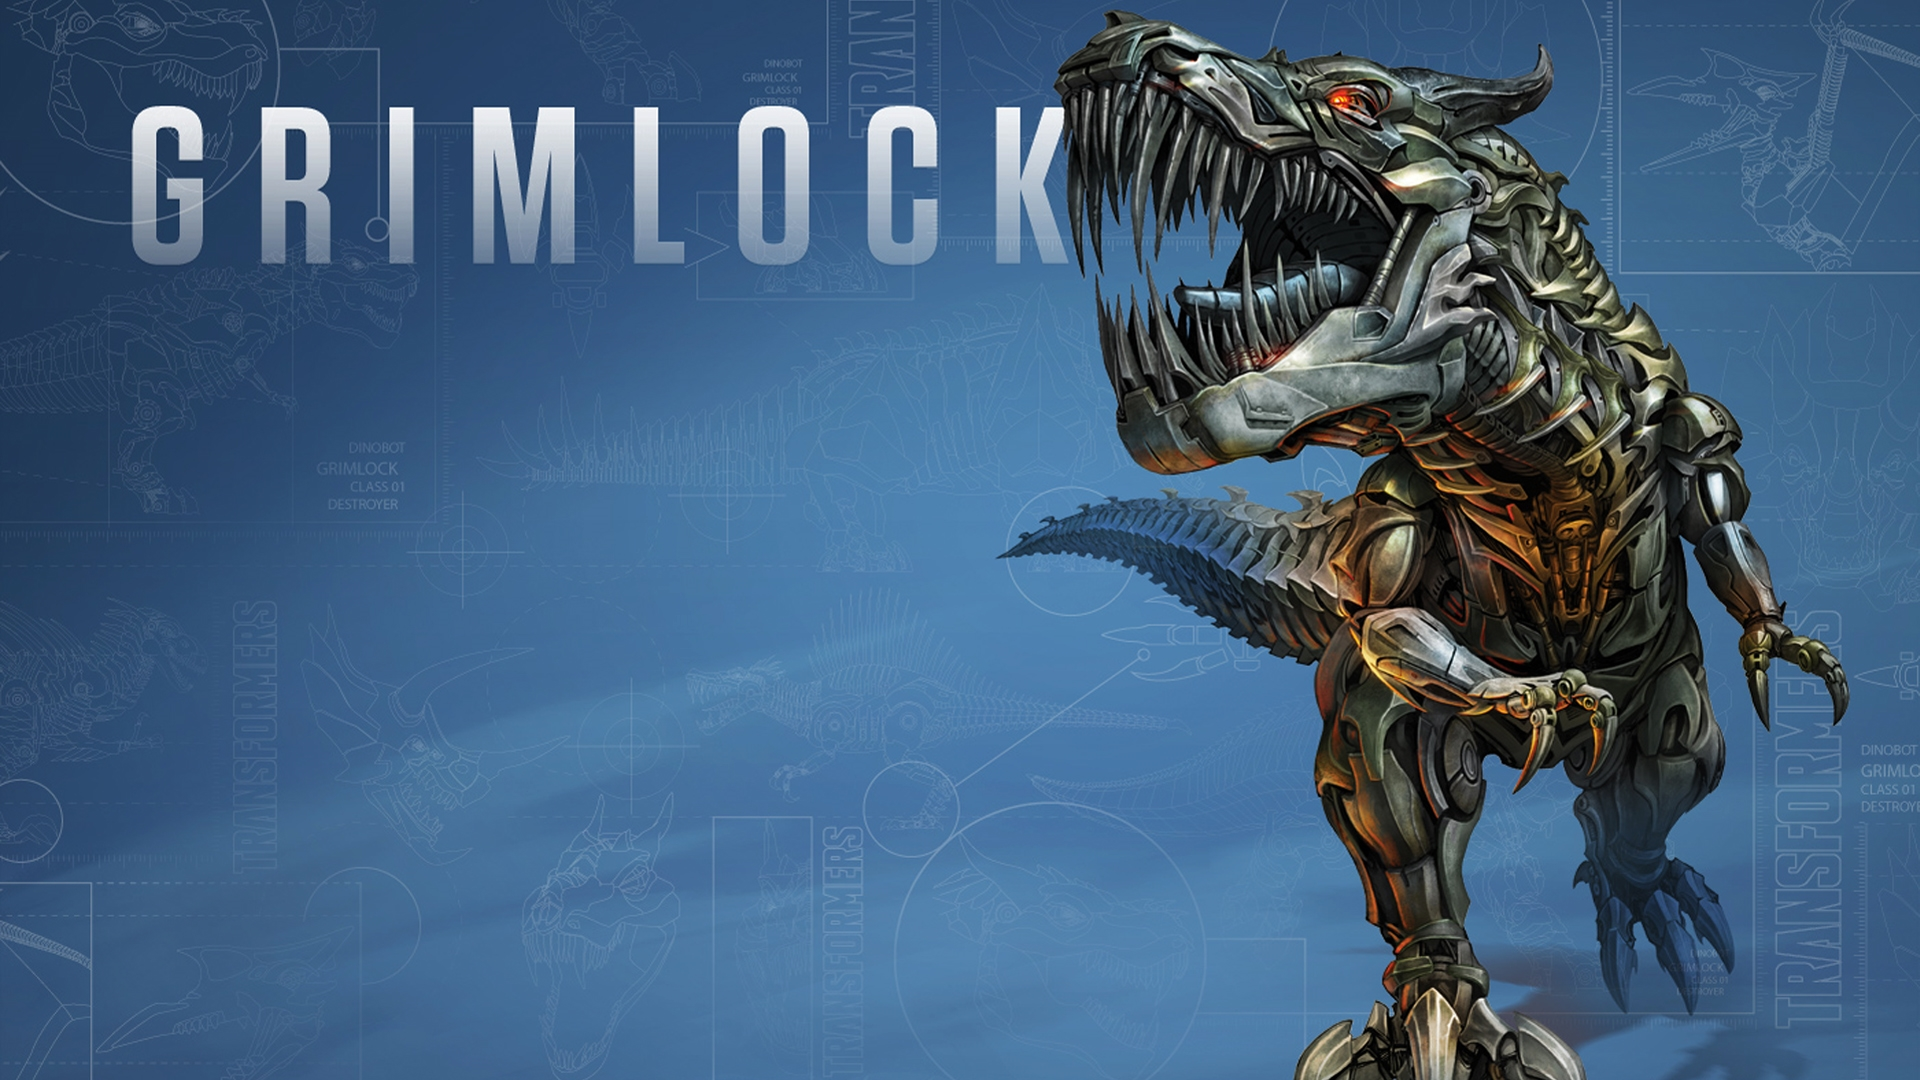 transformers 4 grimlock dinobot movie